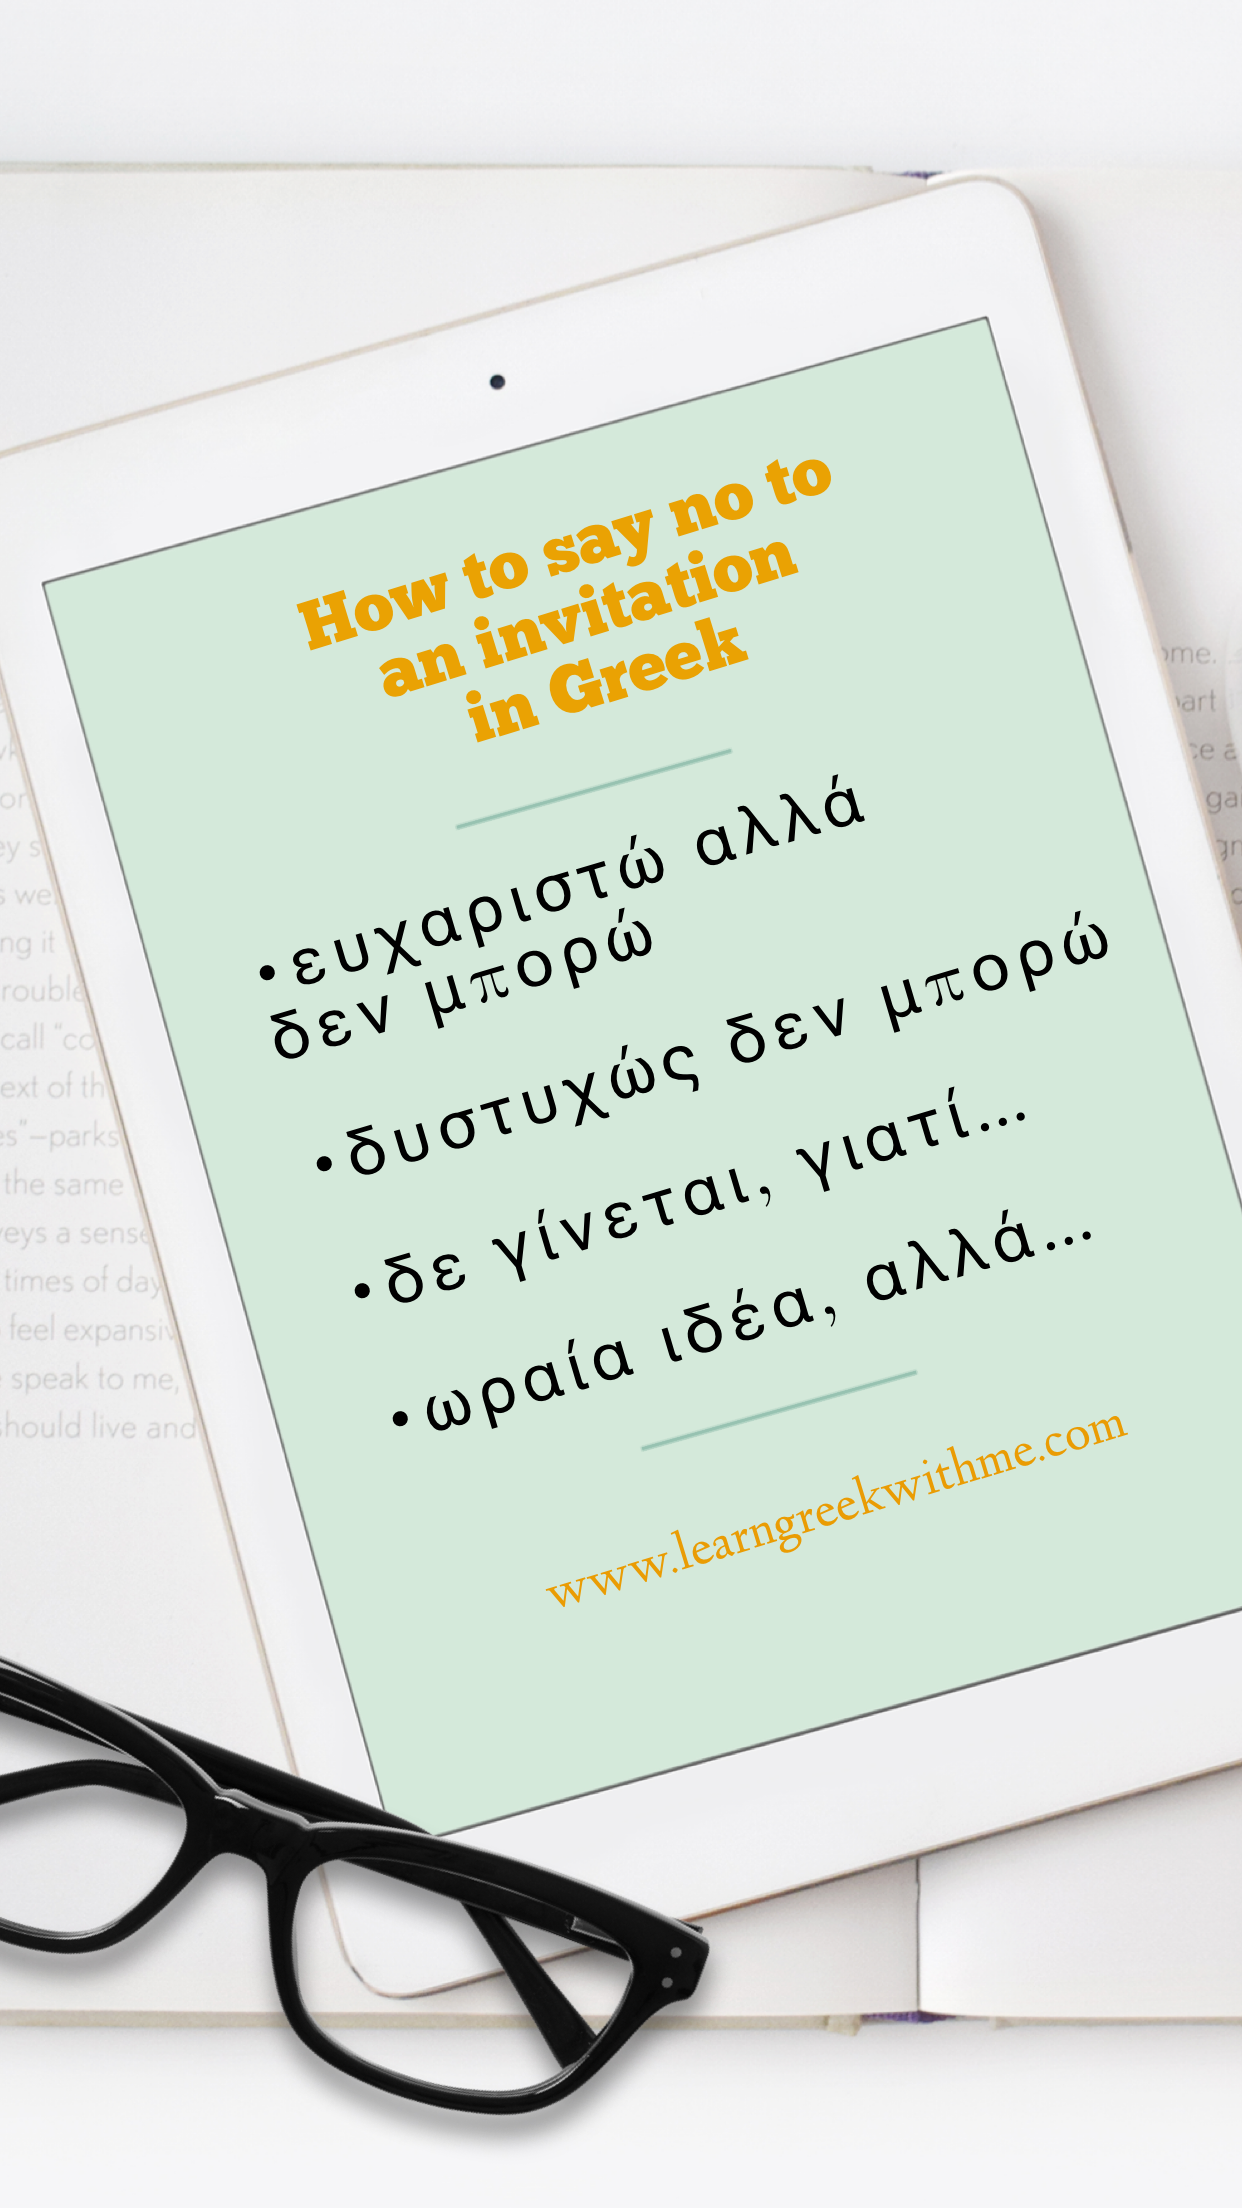 """How to say """"no"""" to an invitation in Greek"""